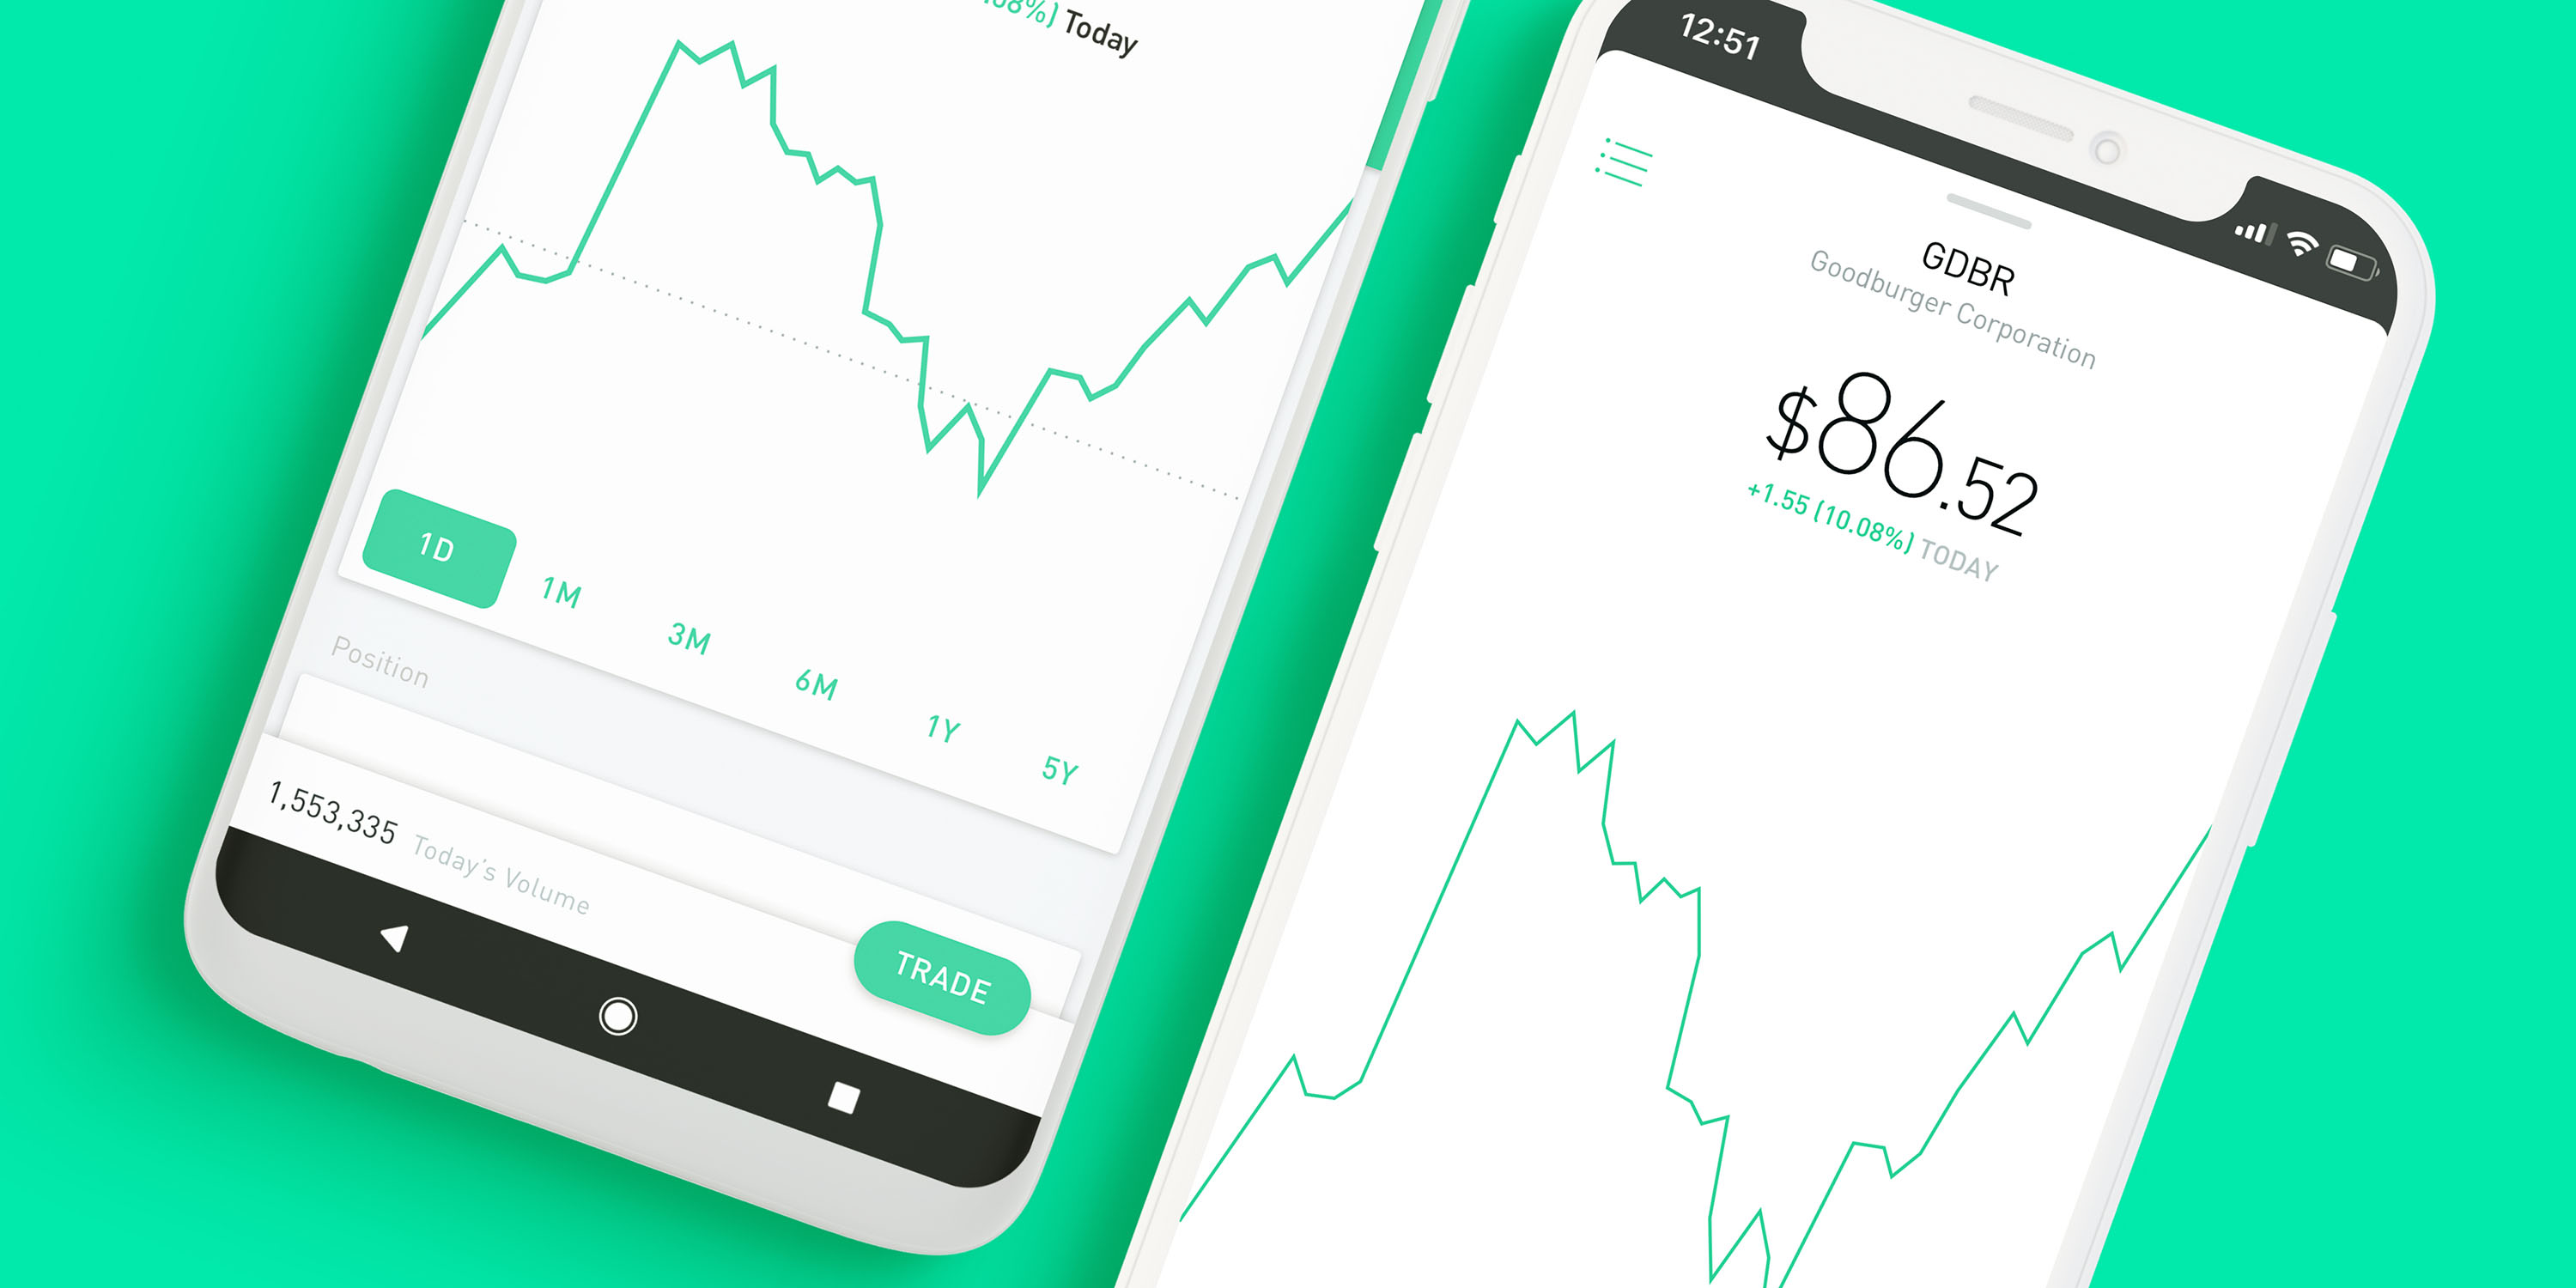 Sell GME in Robinhood, yes; buy it, no – trading app acts - 9to5Mac